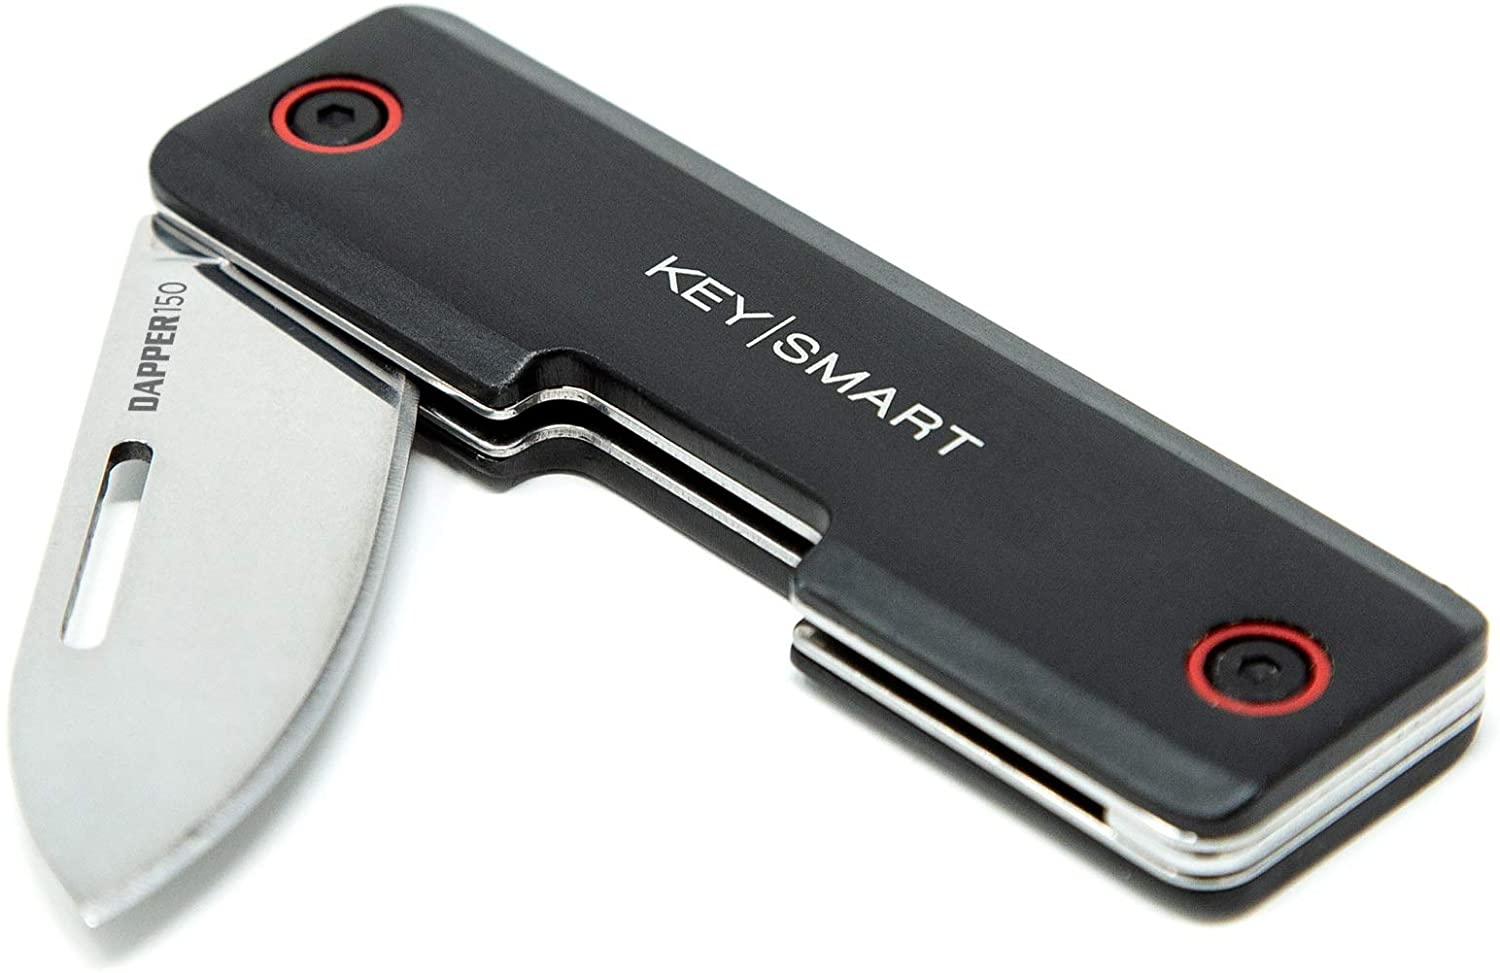 9. KeySmart Dapper 150 Knife